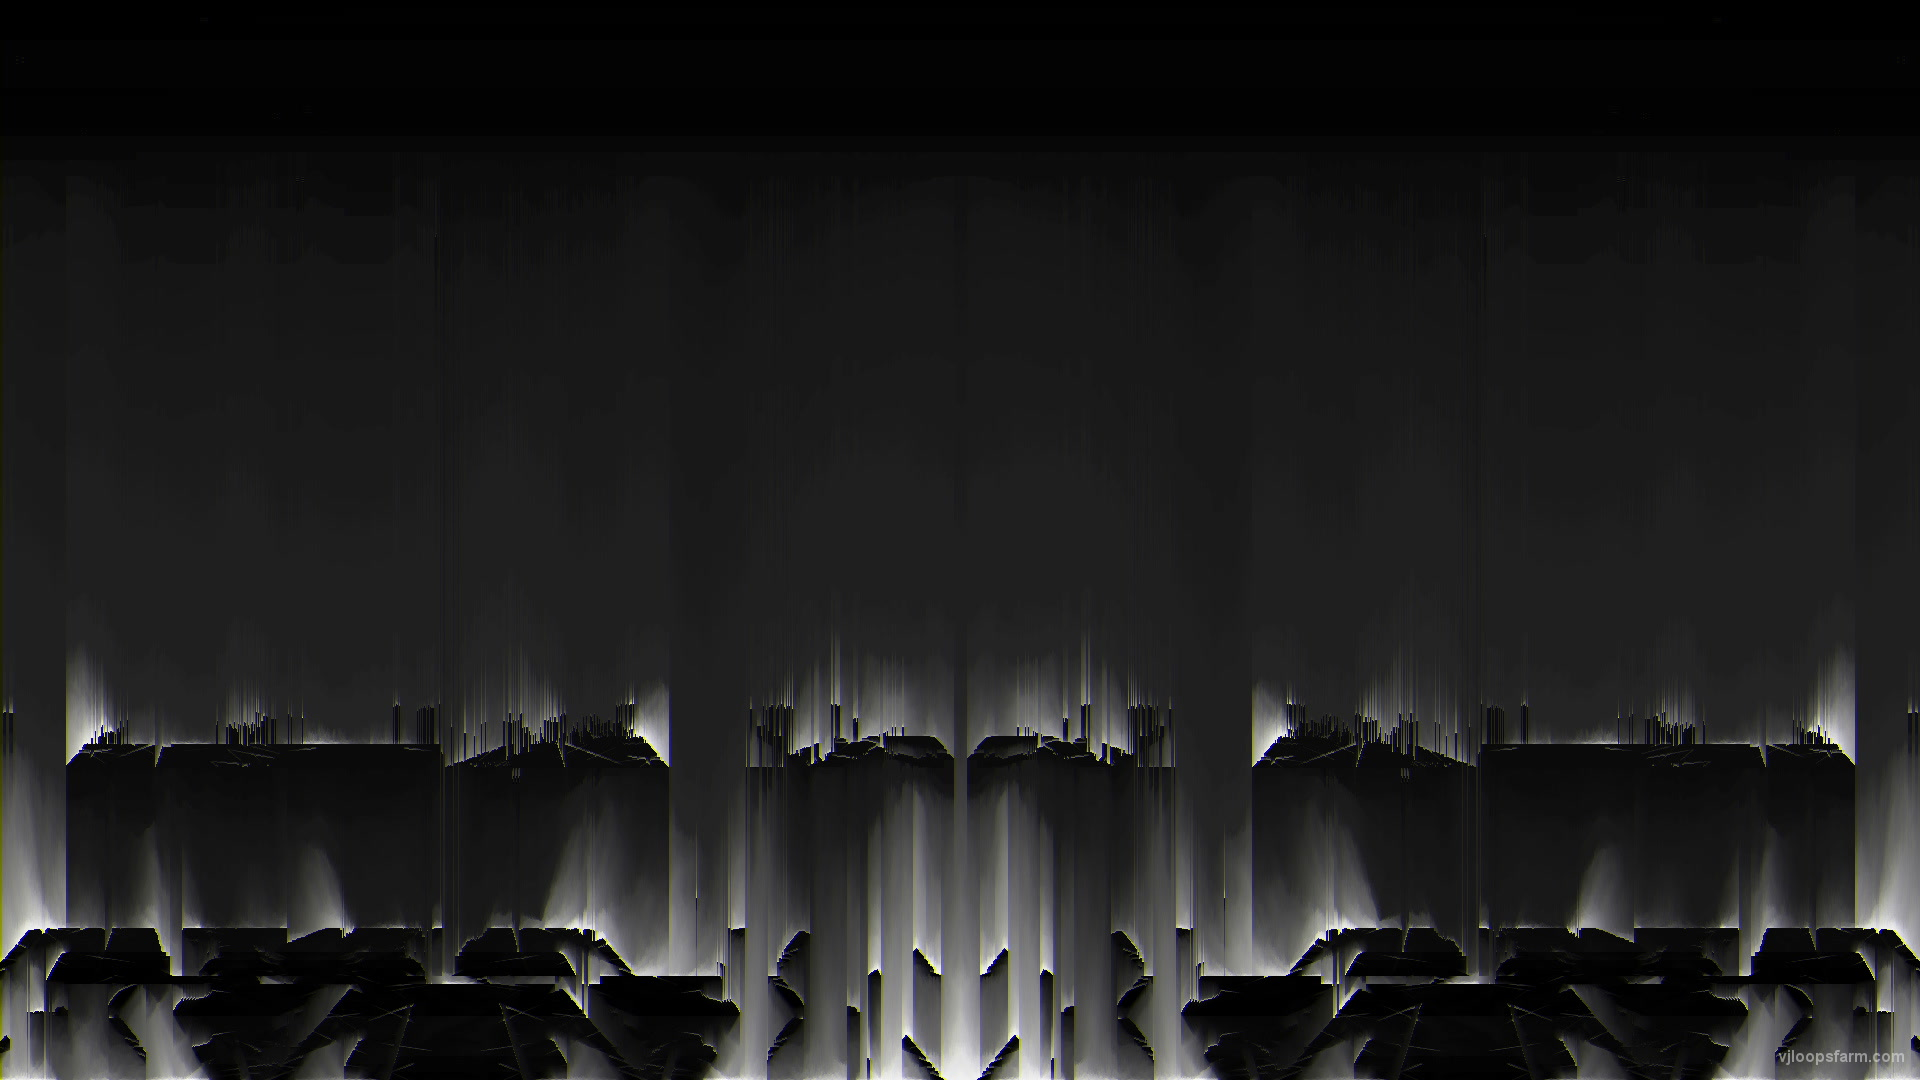 vj video background Glitch-BG-3_1920x1080_60fps_VJLoop_LIMEART_003